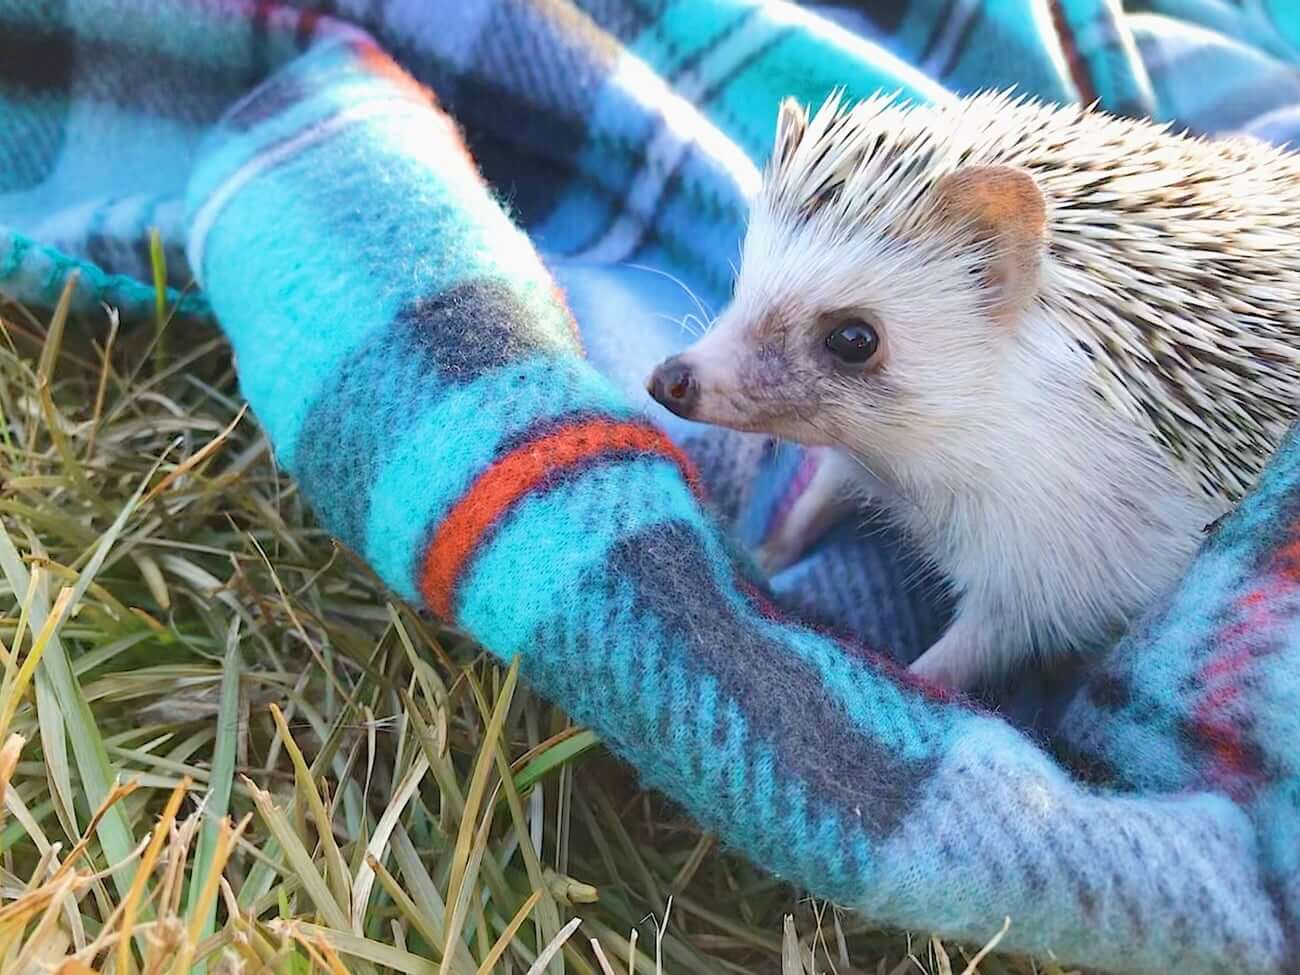 Where to buy a hedgehog on a blanket